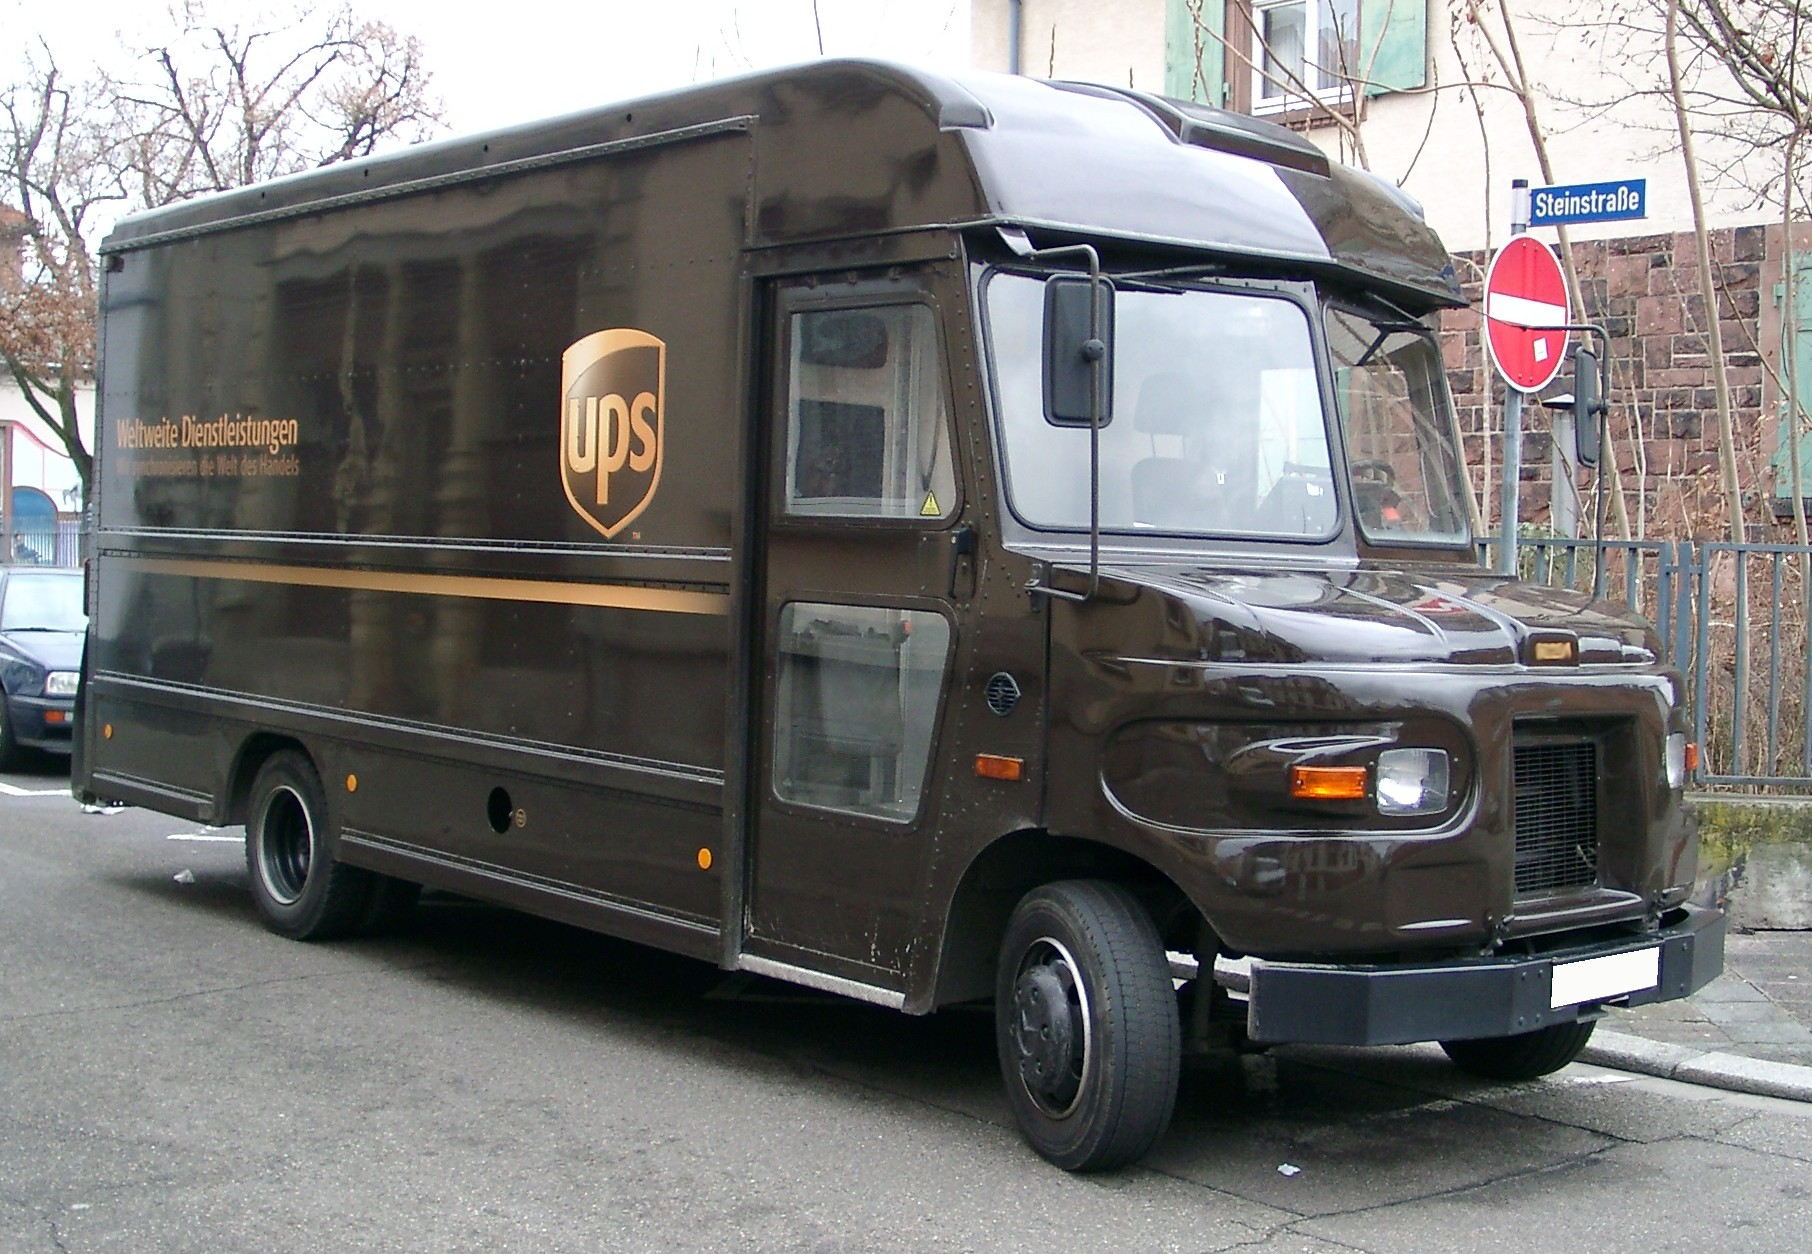 UPS drivers from Montgomery County honored for accident-free driving